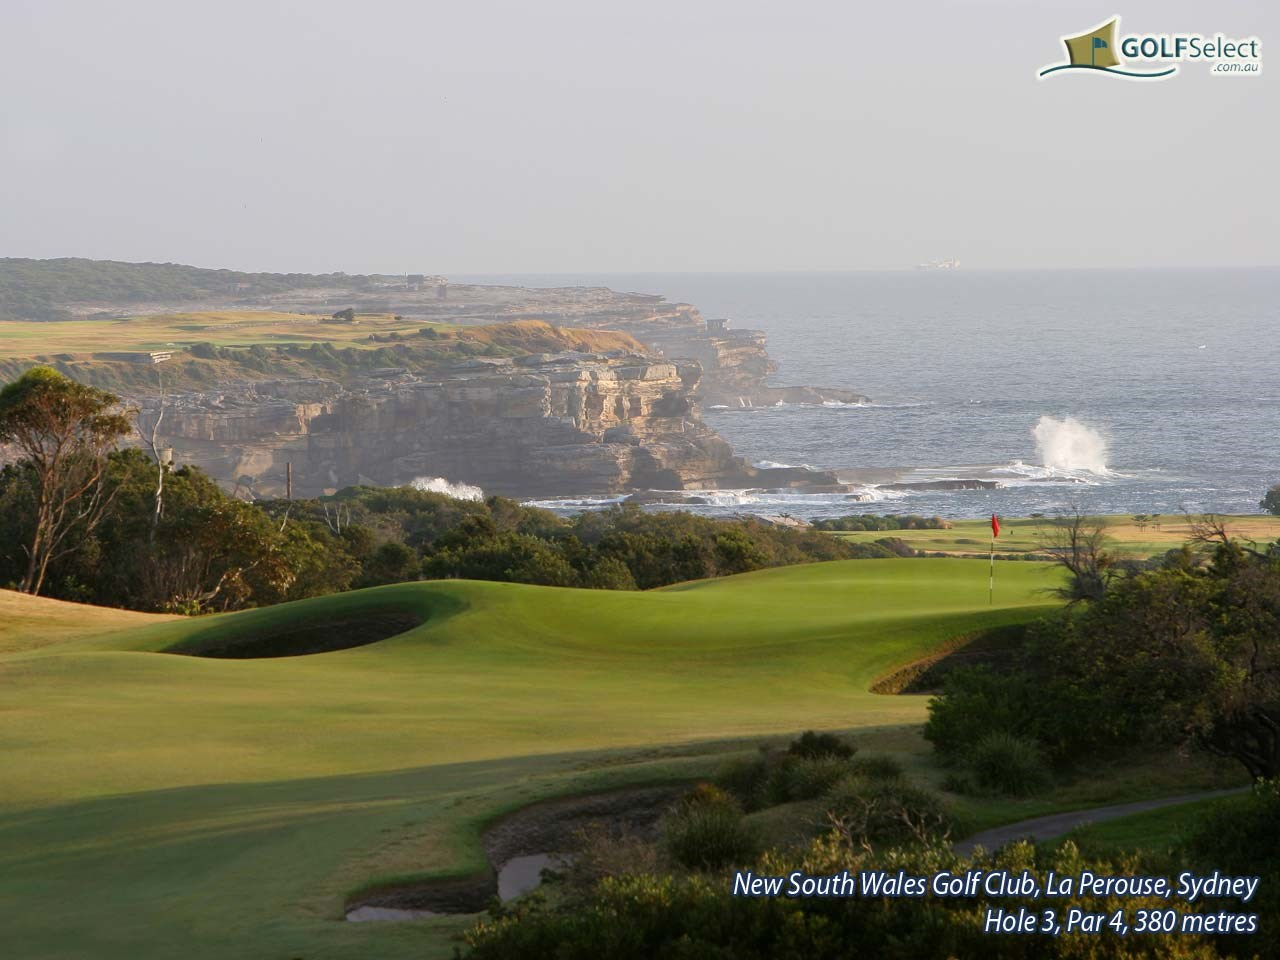 The New South Wales Golf Club Hole 3, Par 4, 380 metres